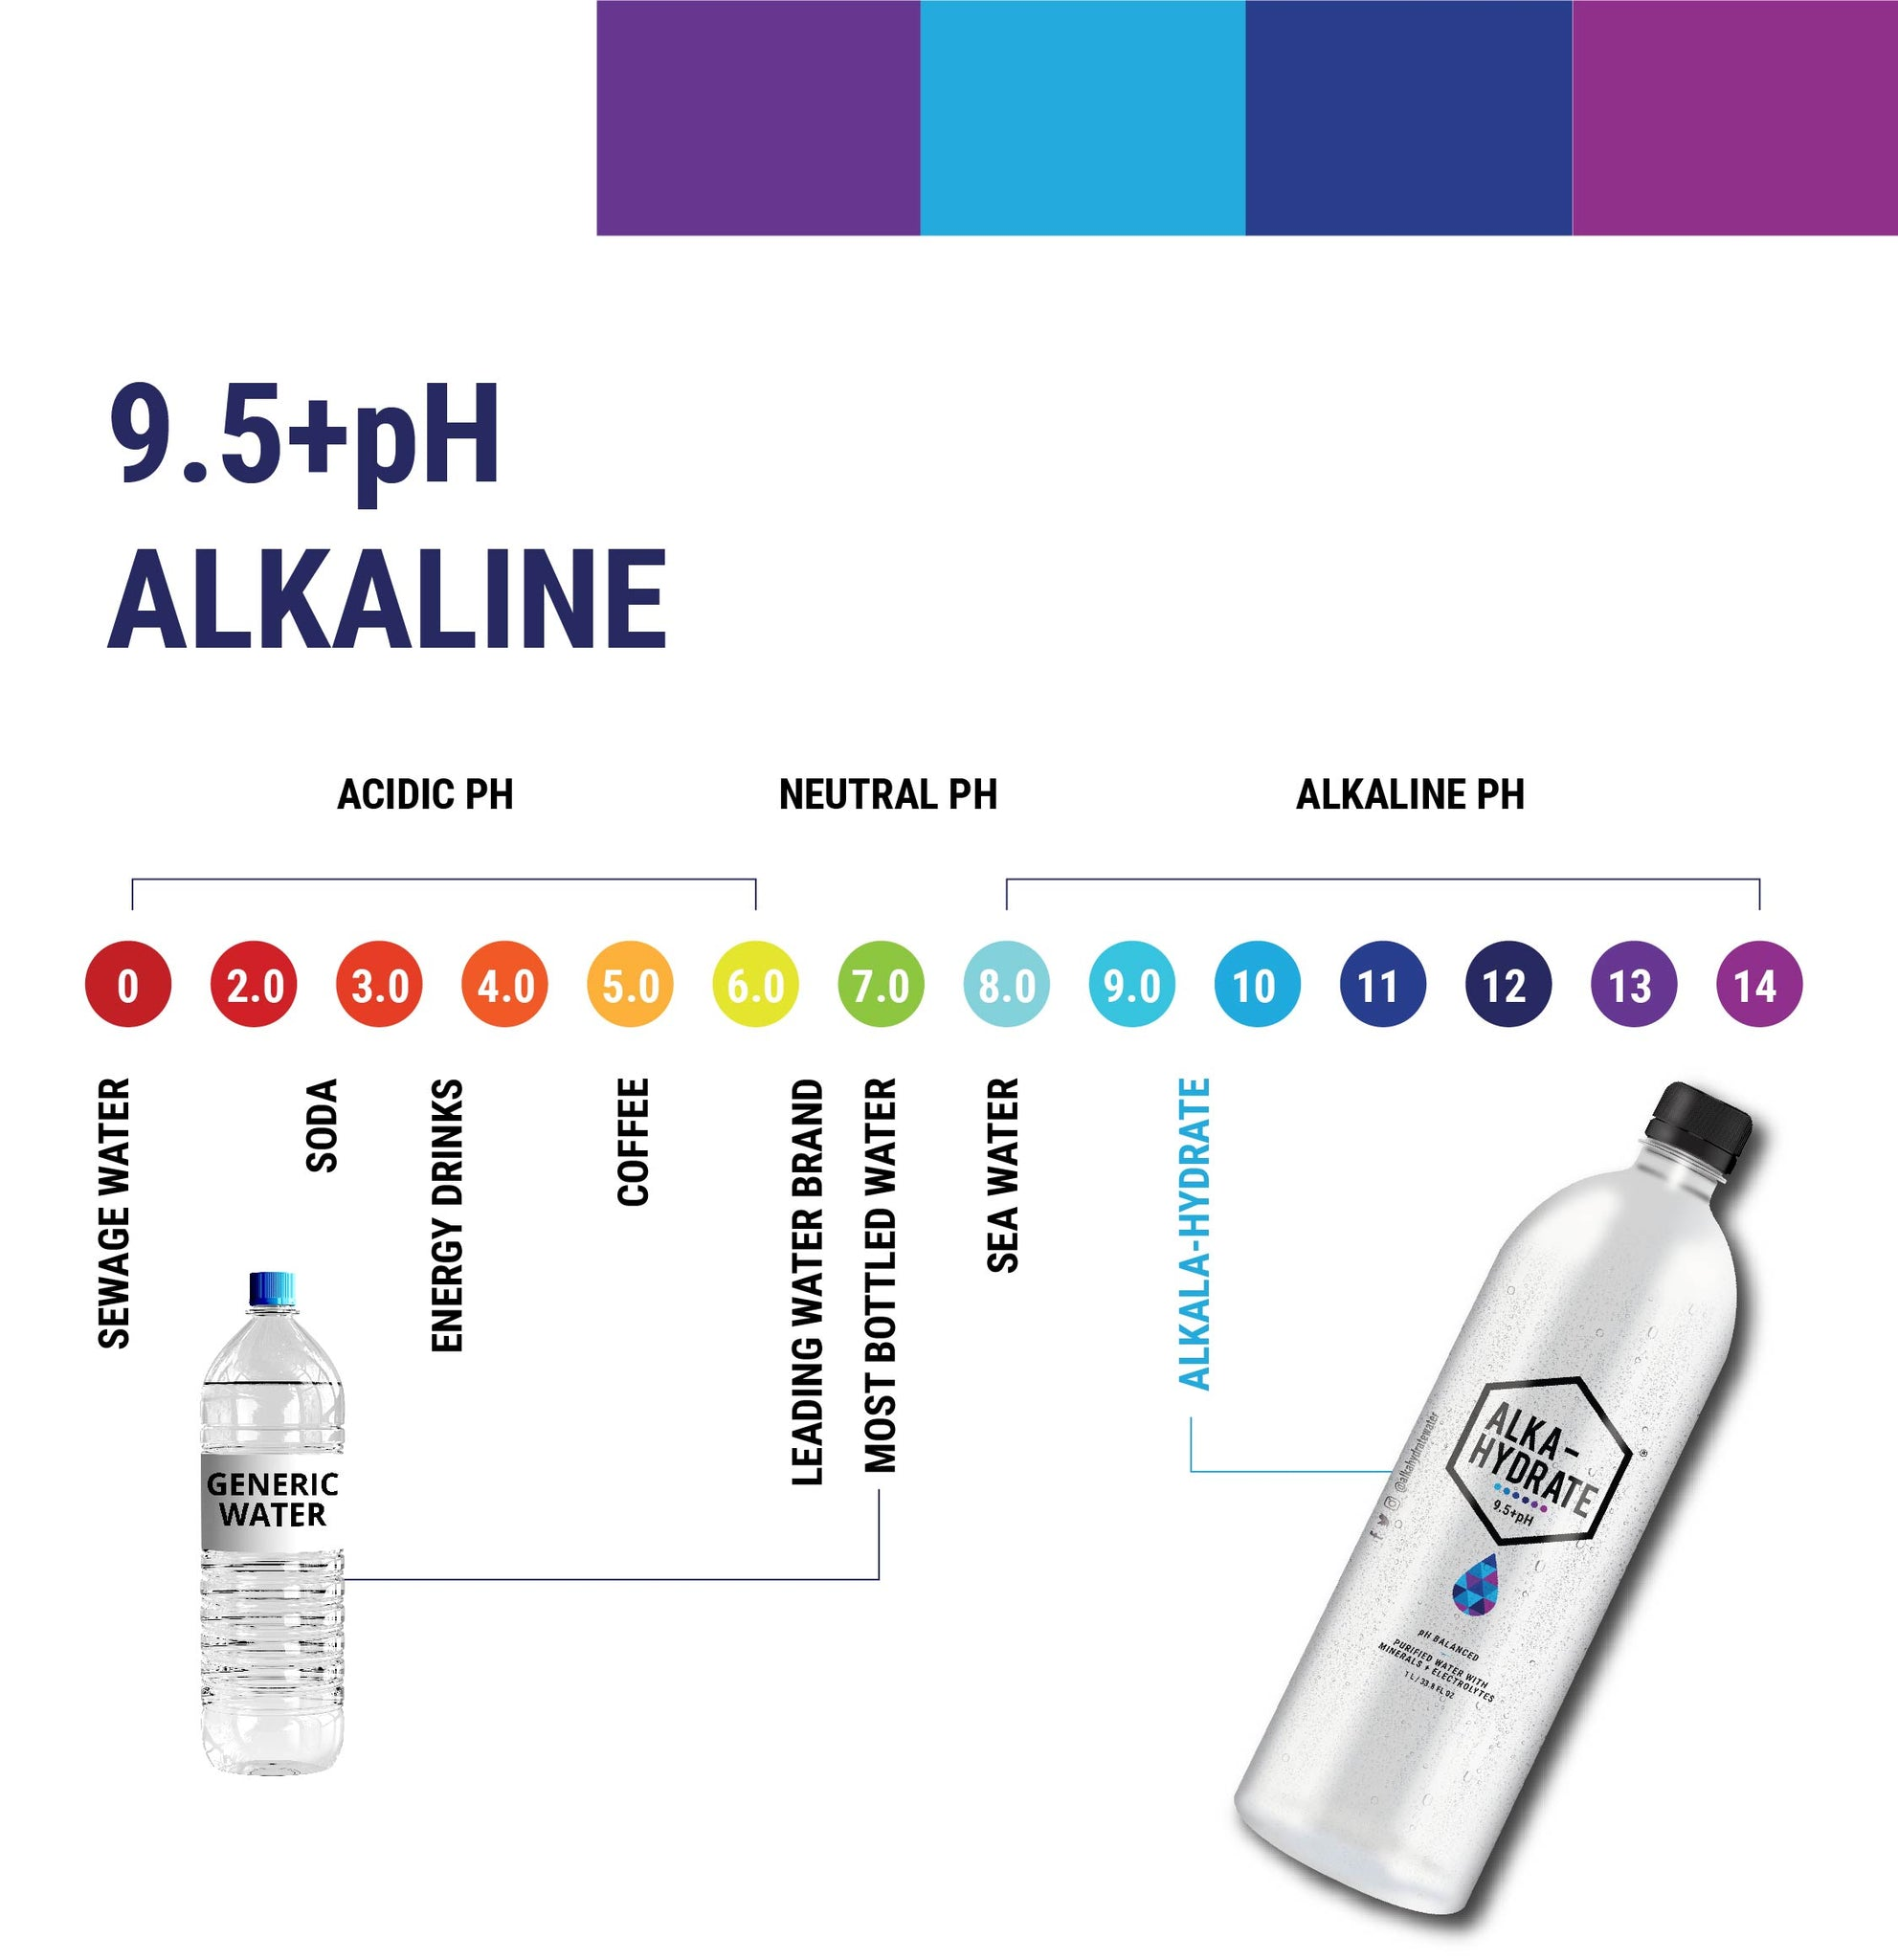 alka hydrate graphic